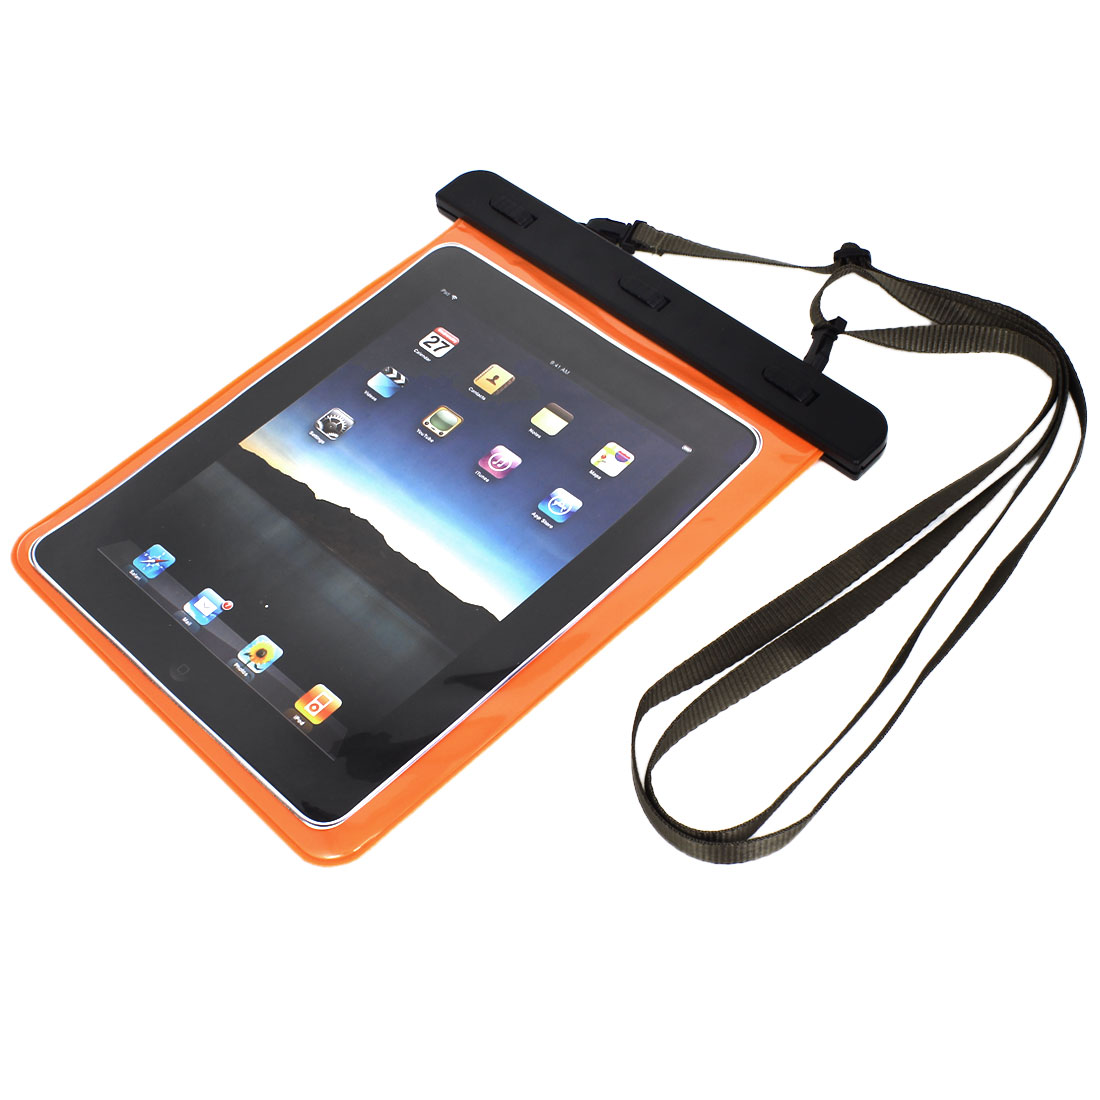 PVC Waterproof Bag Dry Pouch Skin Cover Protector Black for iPad Mini